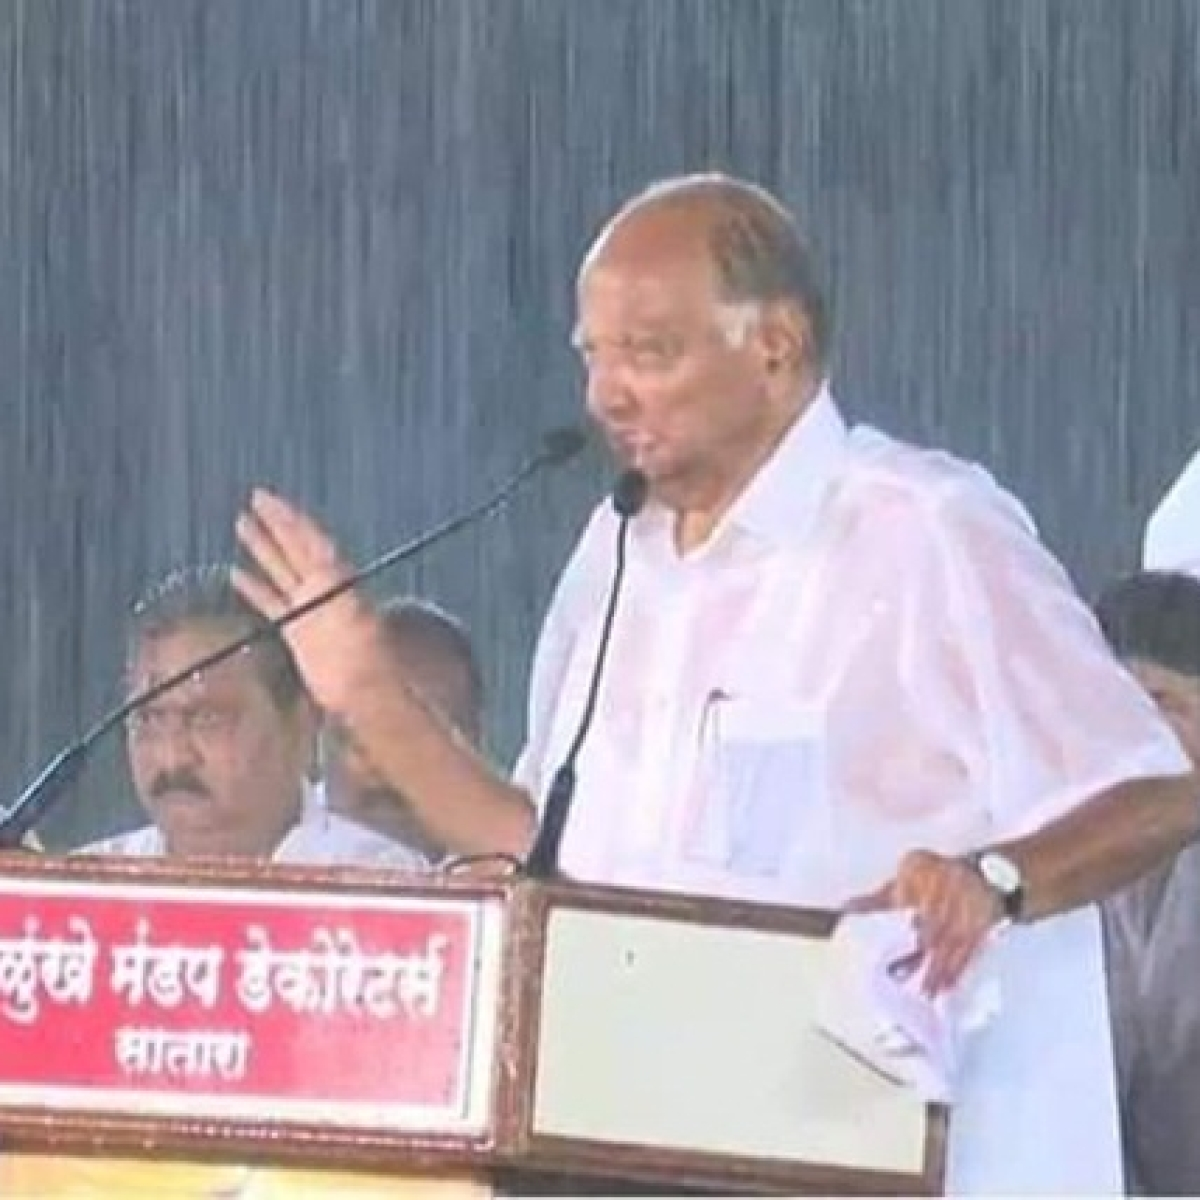 Maha Election 2019: Sharad Pawar's speech in pouring rain becomes image of defiance for Opposition